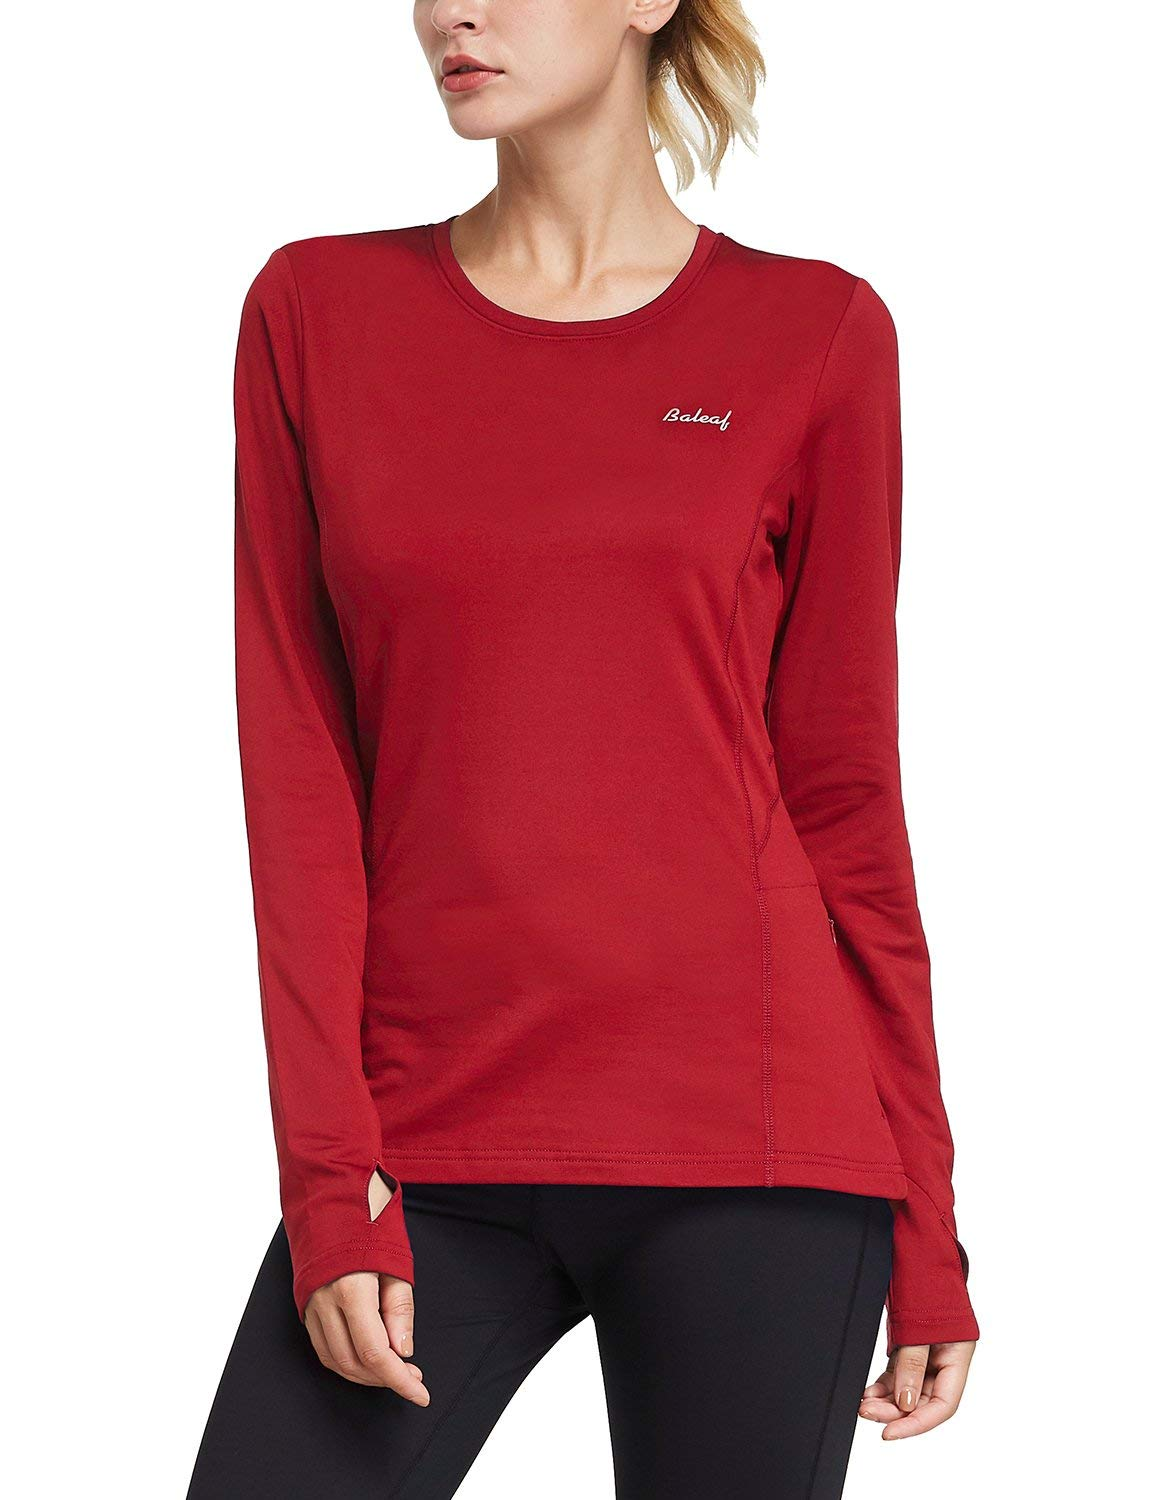 BALEAF Women's Thermal Fleece Tops Long Sleeve Running Shirt with Thumbholes Zipper Pocket Red Size XS by BALEAF